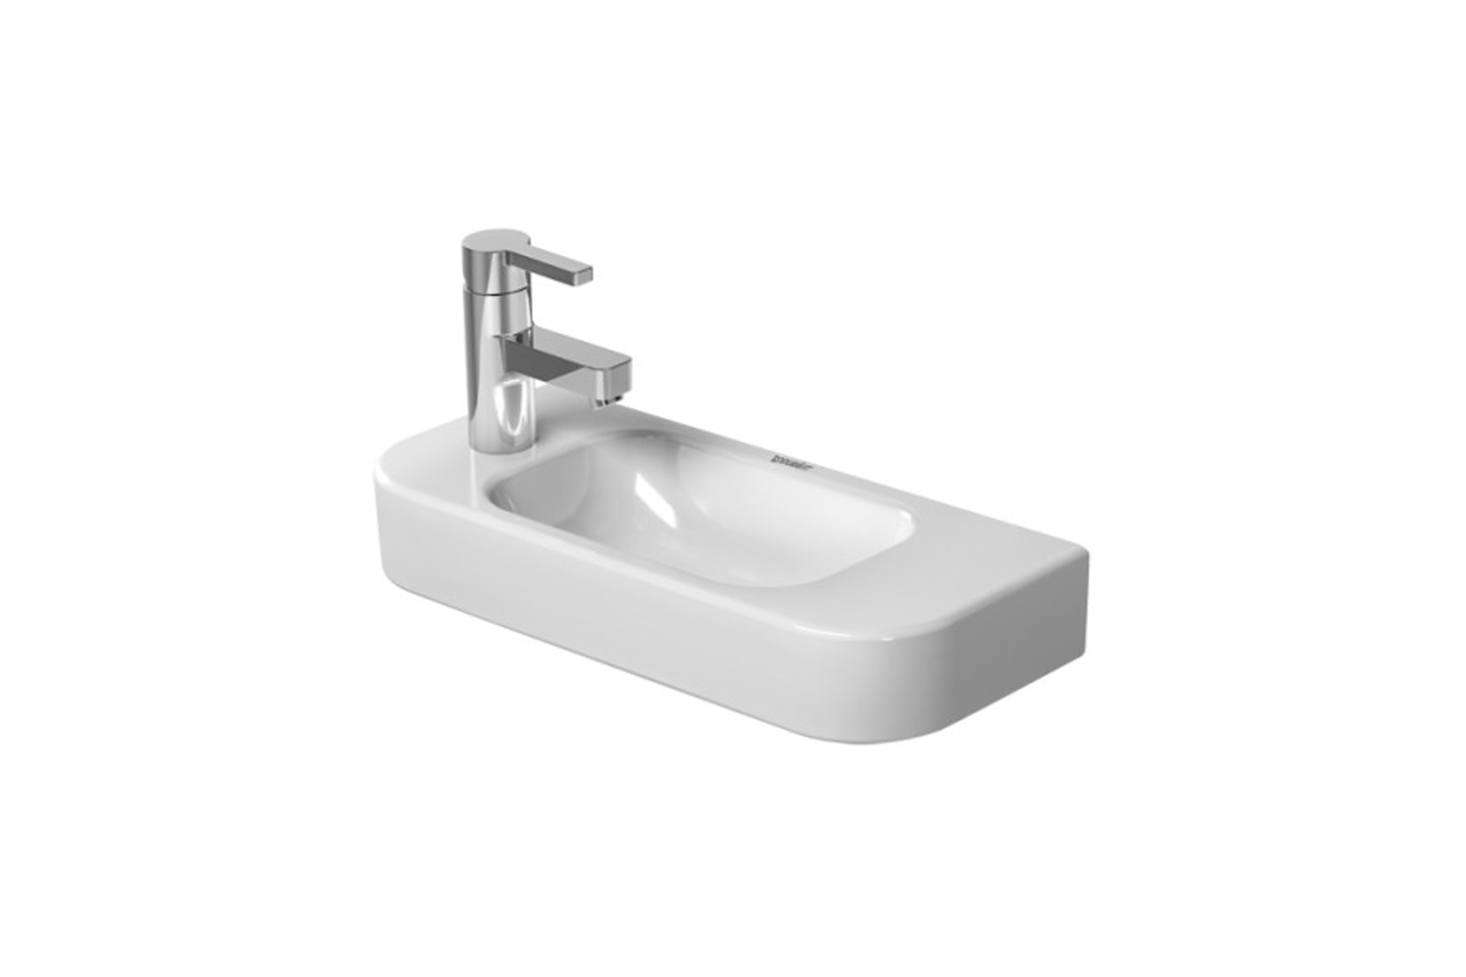 The Duravit Happy D Handrinse Basin is $6.30 at PlumbTile.